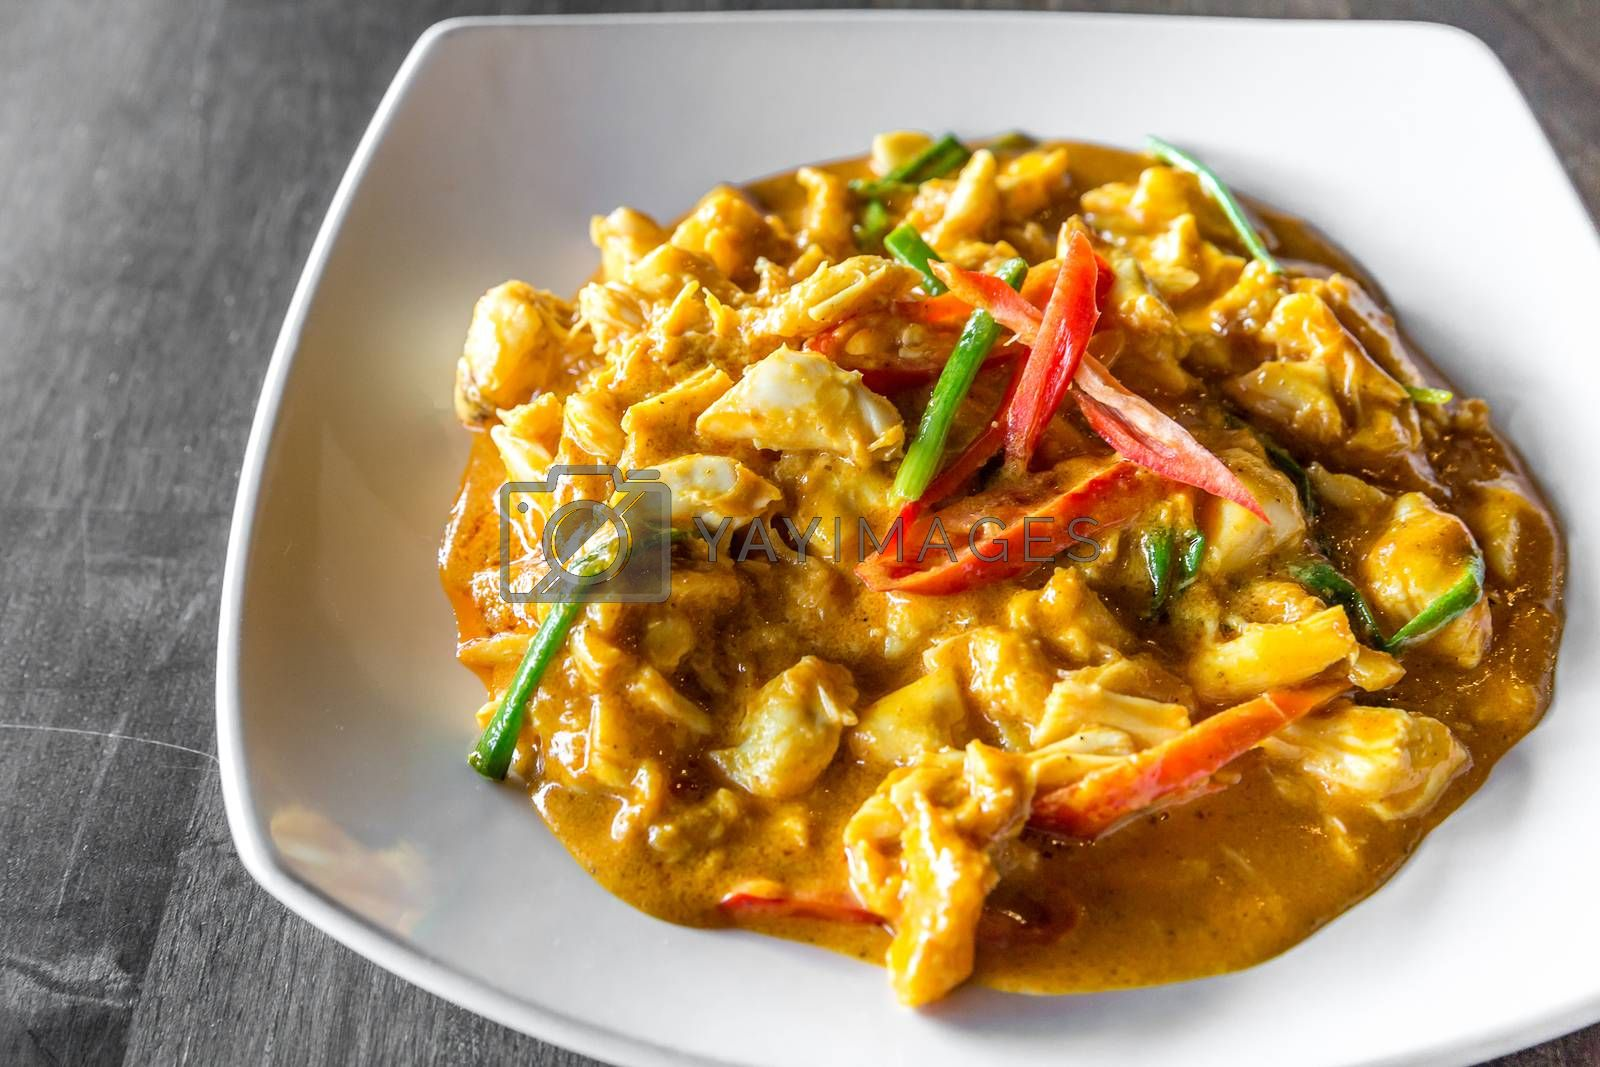 Chili Crab meat fried with curry in Thai style cuisine food